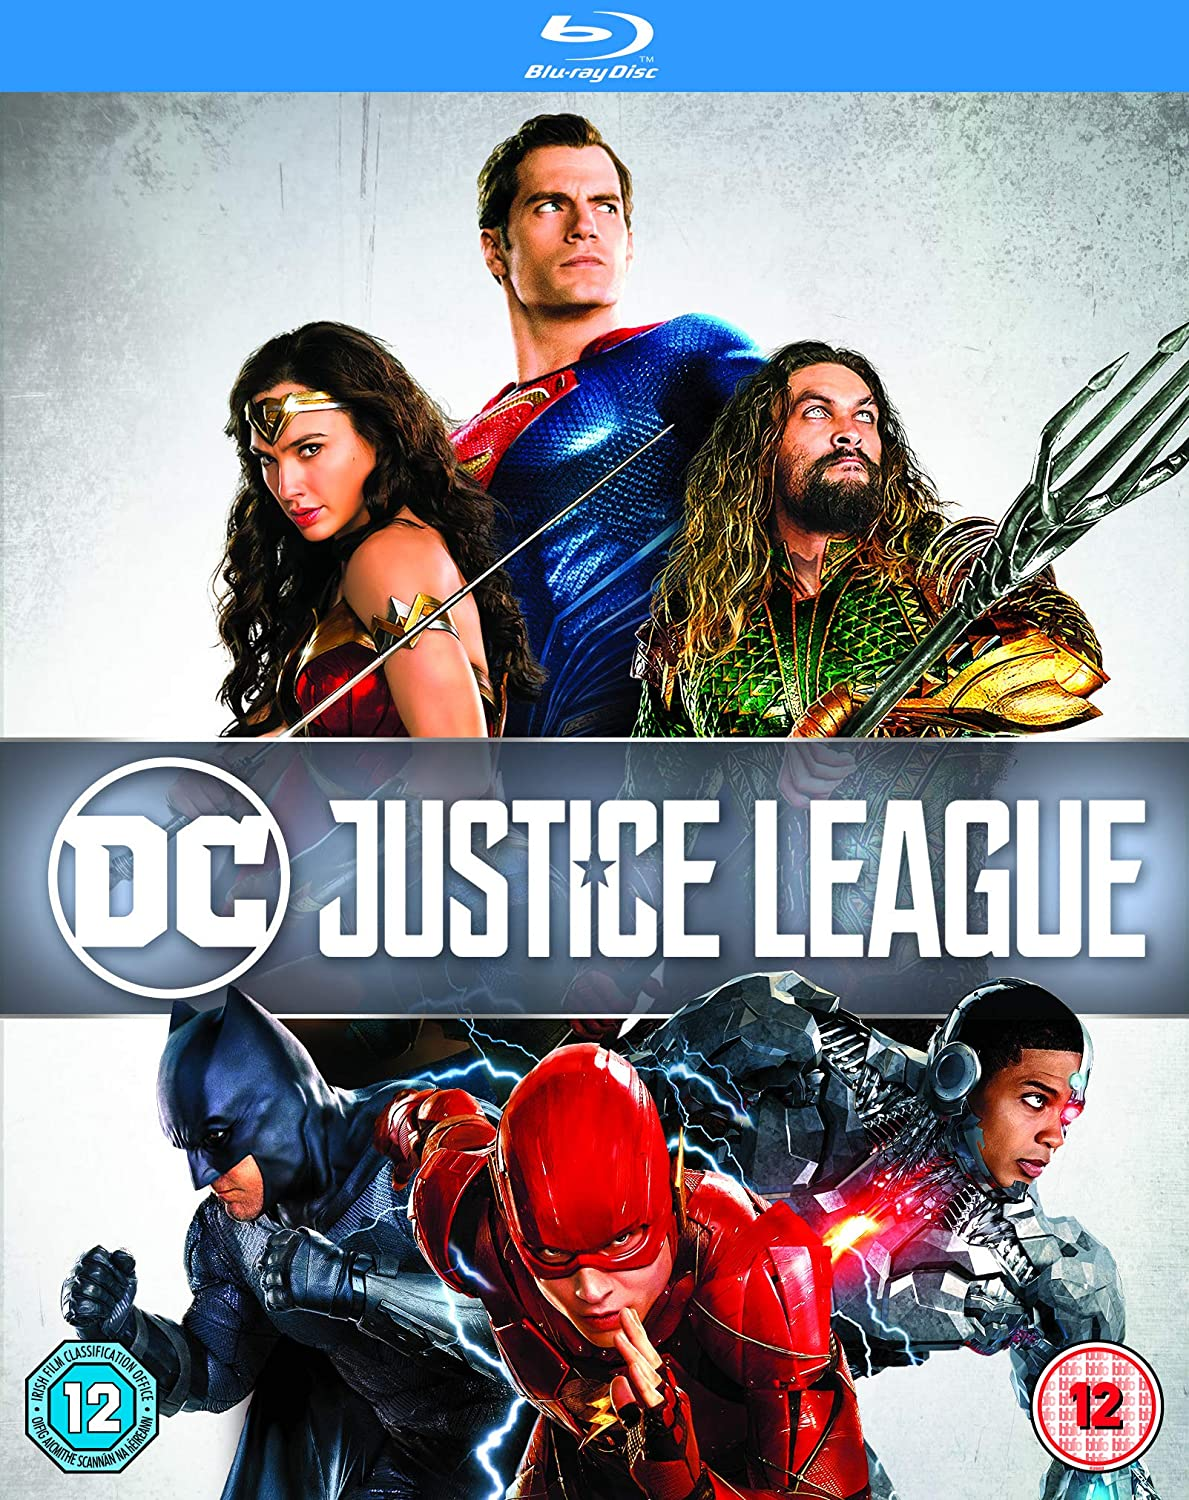 Justice League Blu Ray 2017 Amazon Co Uk Ben Affleck Henry Cavill Gal Gadot Ezra Miller Jason Momoa Ray Fisher Amy Adams Amber Heard Jeremy Irons J K Simmons Fabian Wagner Zack Snyder Ben Affleck Henry